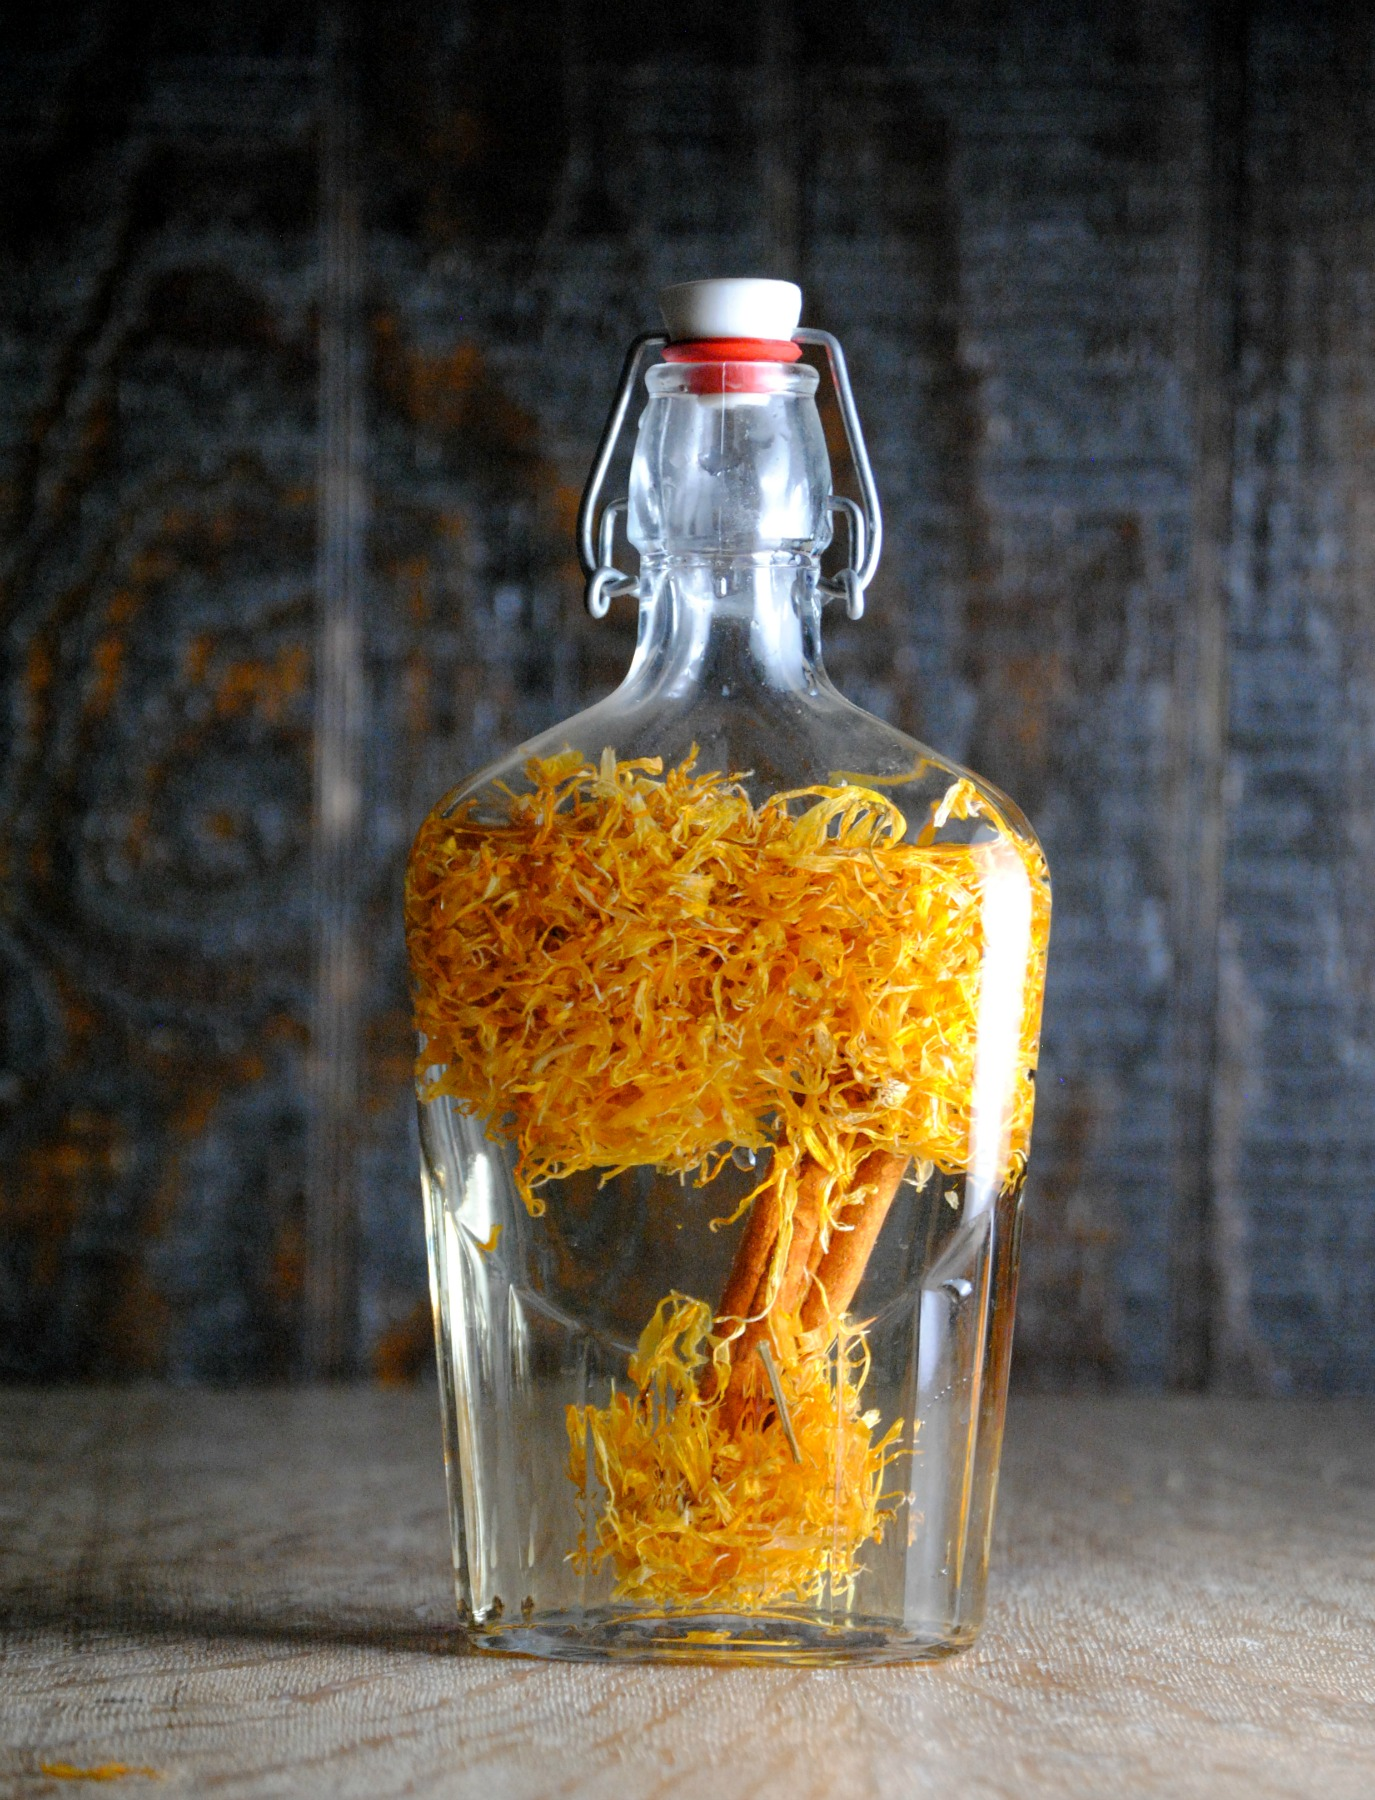 infused-tequila-dayofthedead-VianneyRodriguez